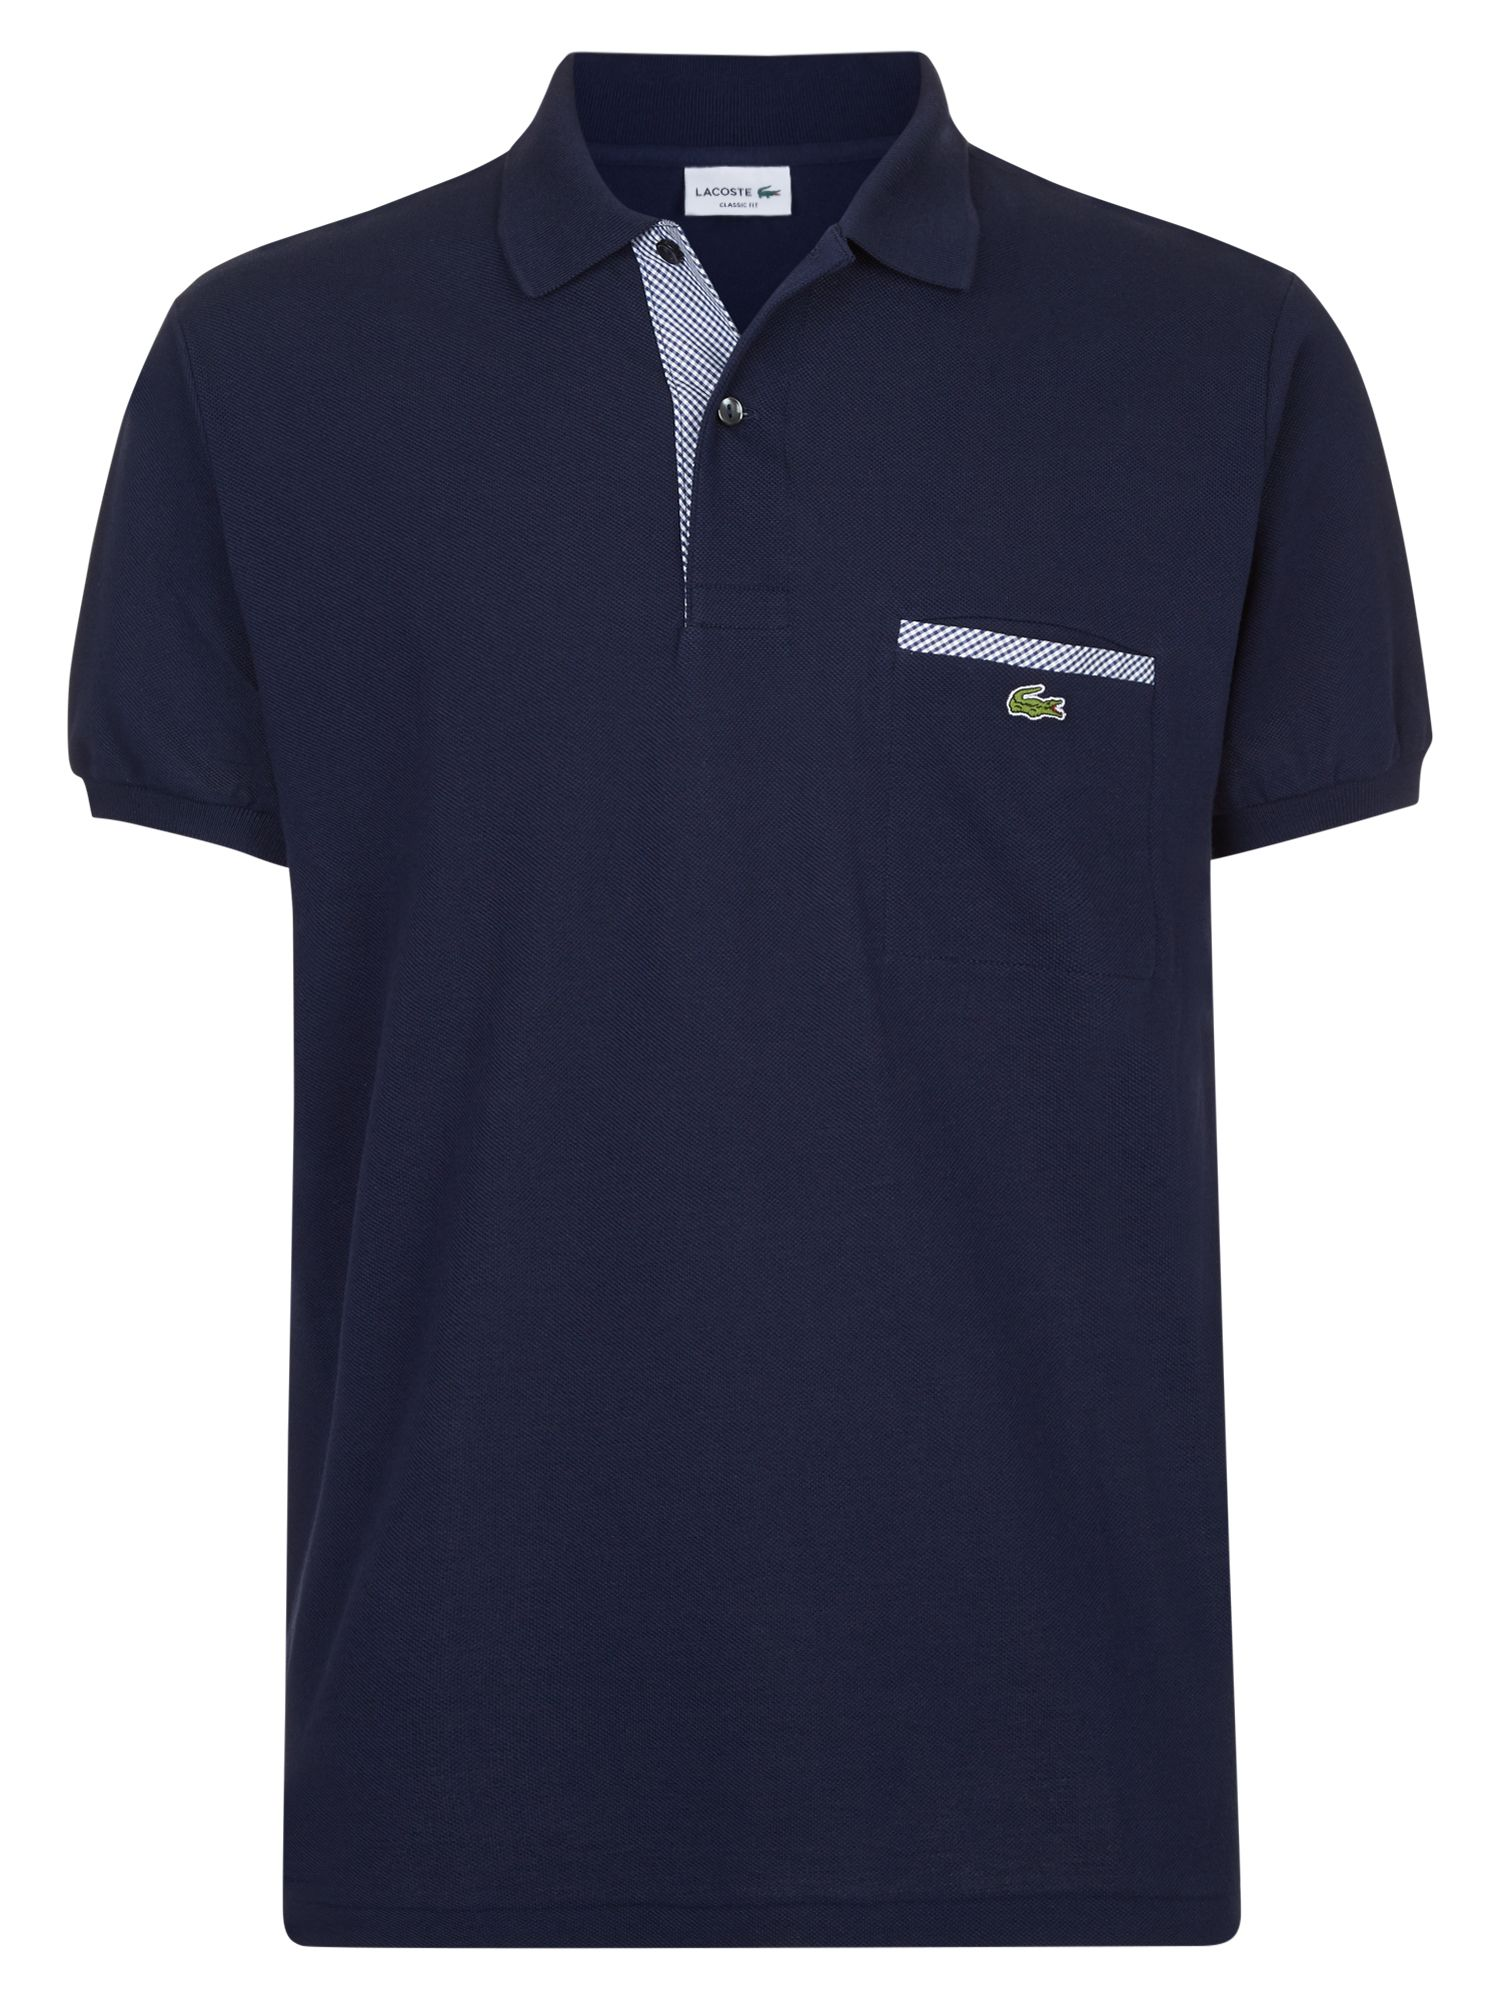 Men's Lacoste Contrast Pocket Polo Shirt, Blue & White